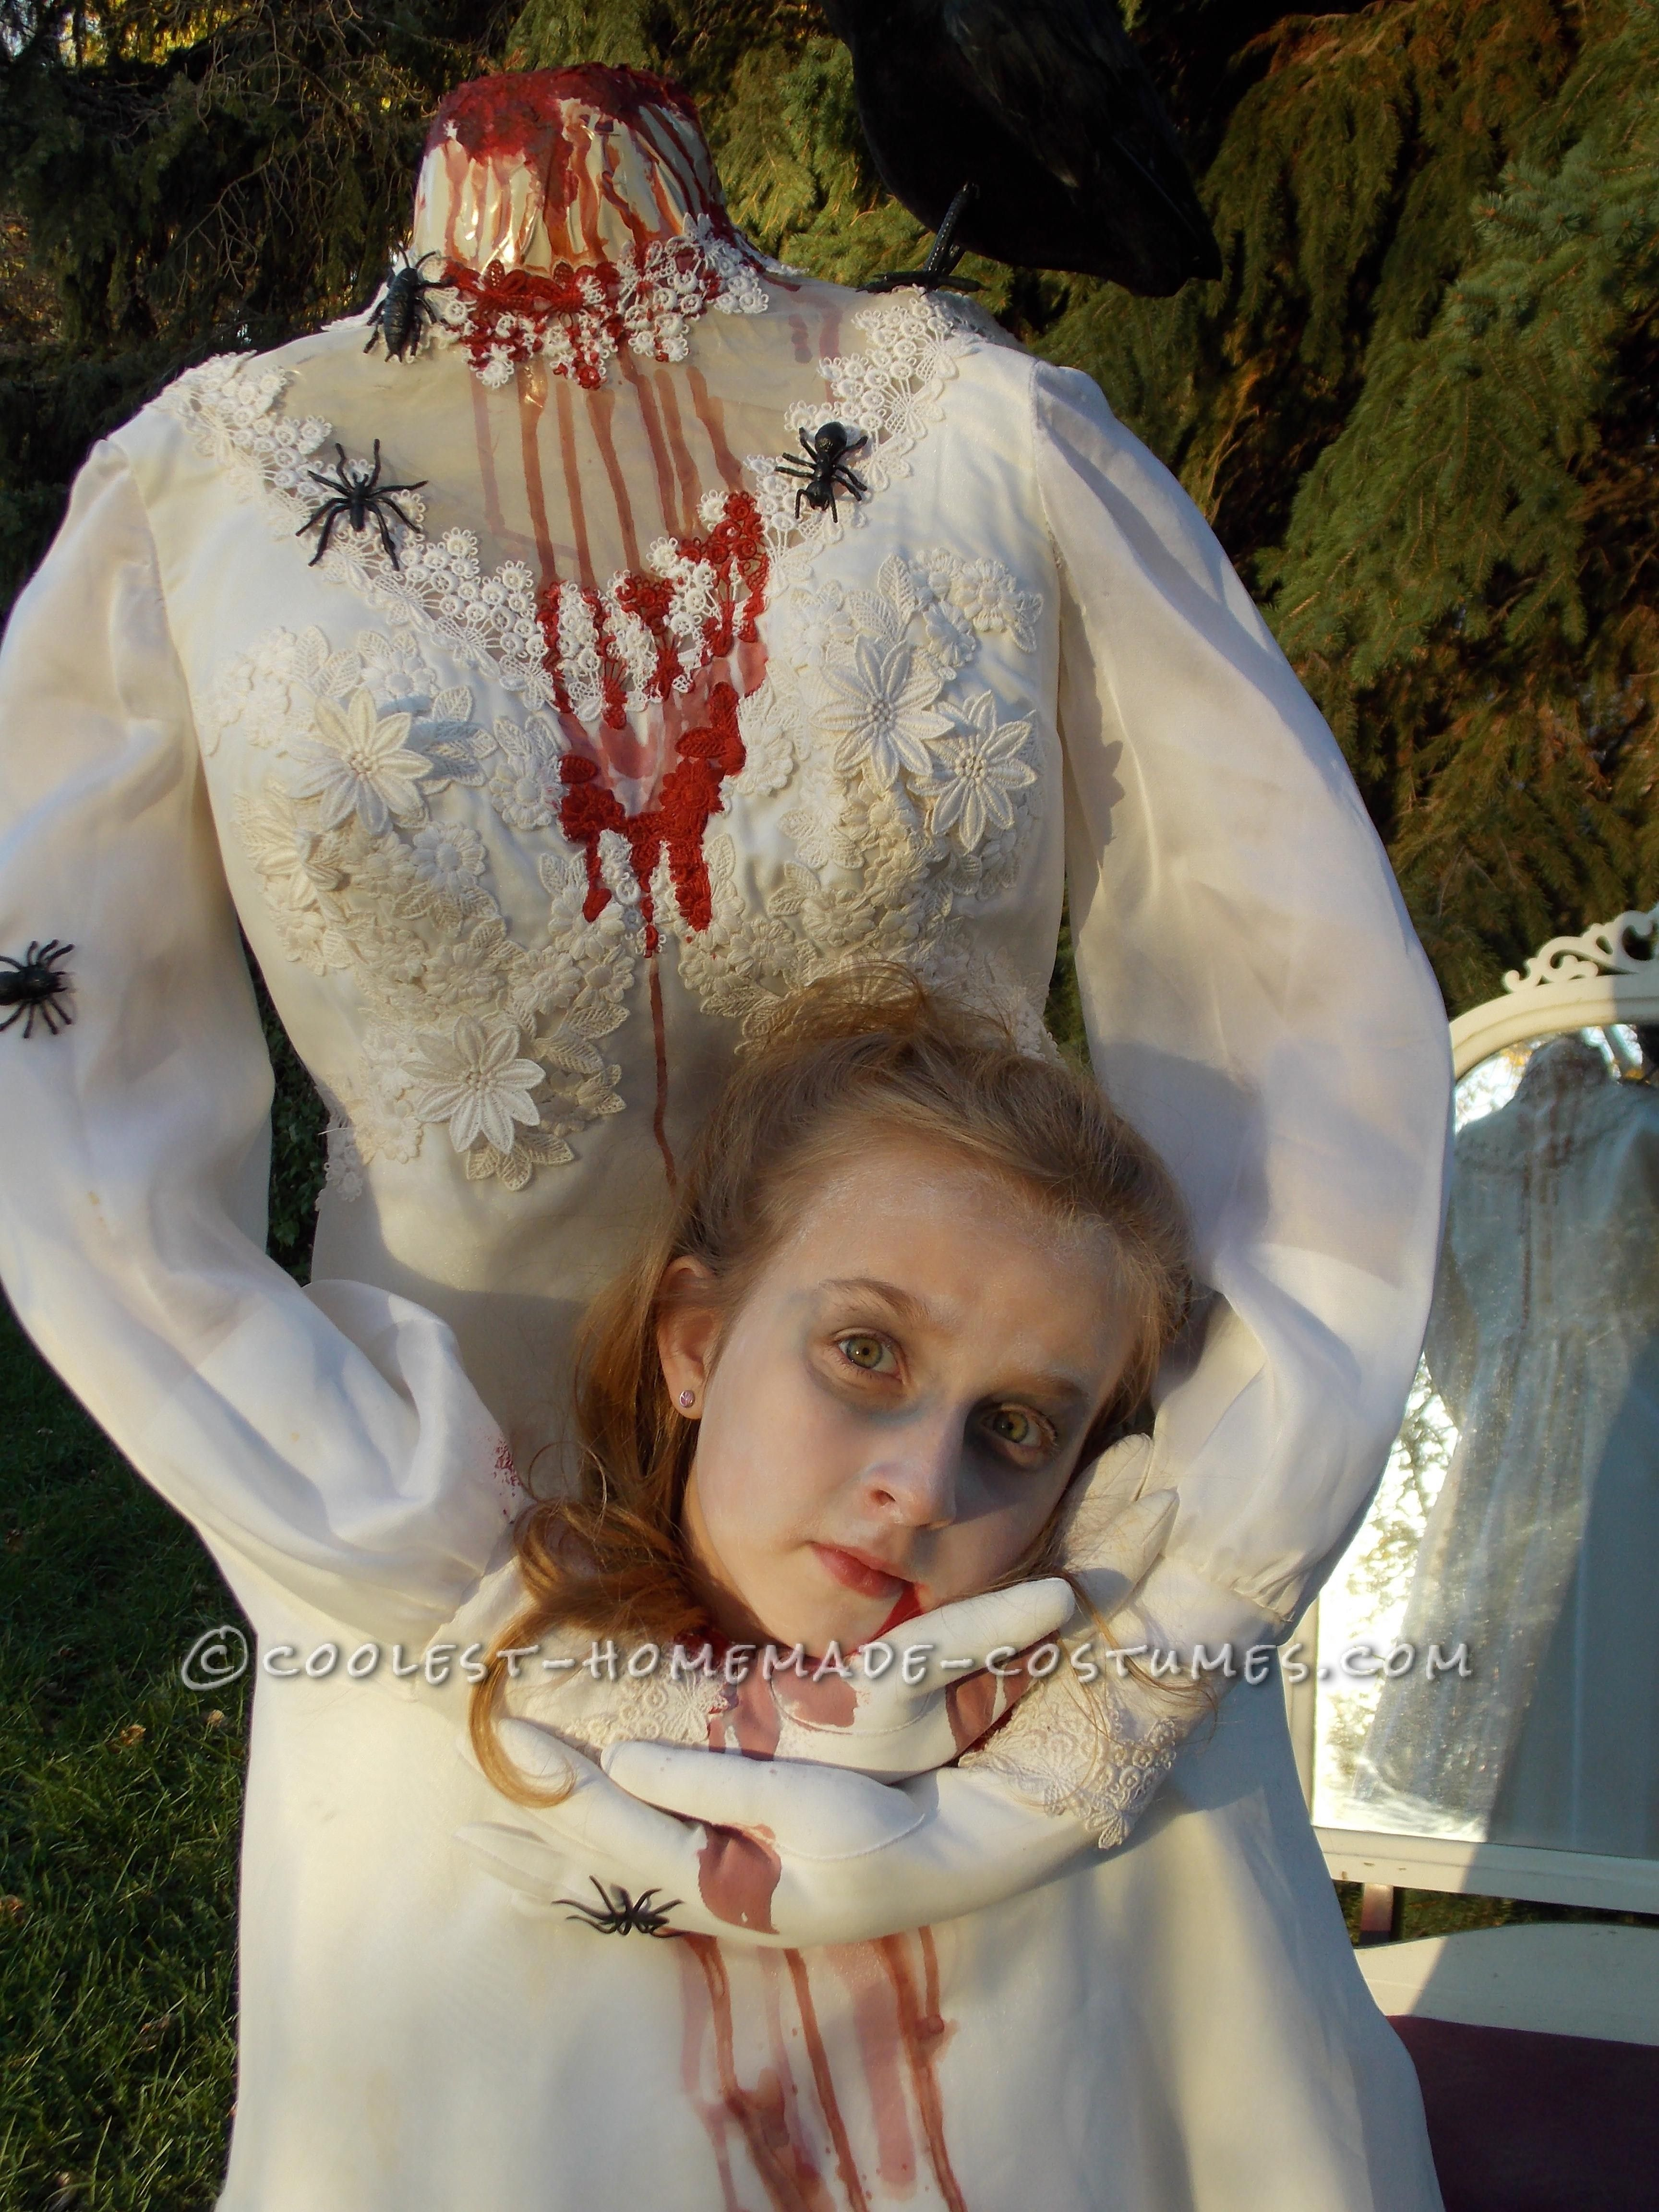 Haunting Headless Bride Costume for a 9-Year-Old Girl | Bride ...